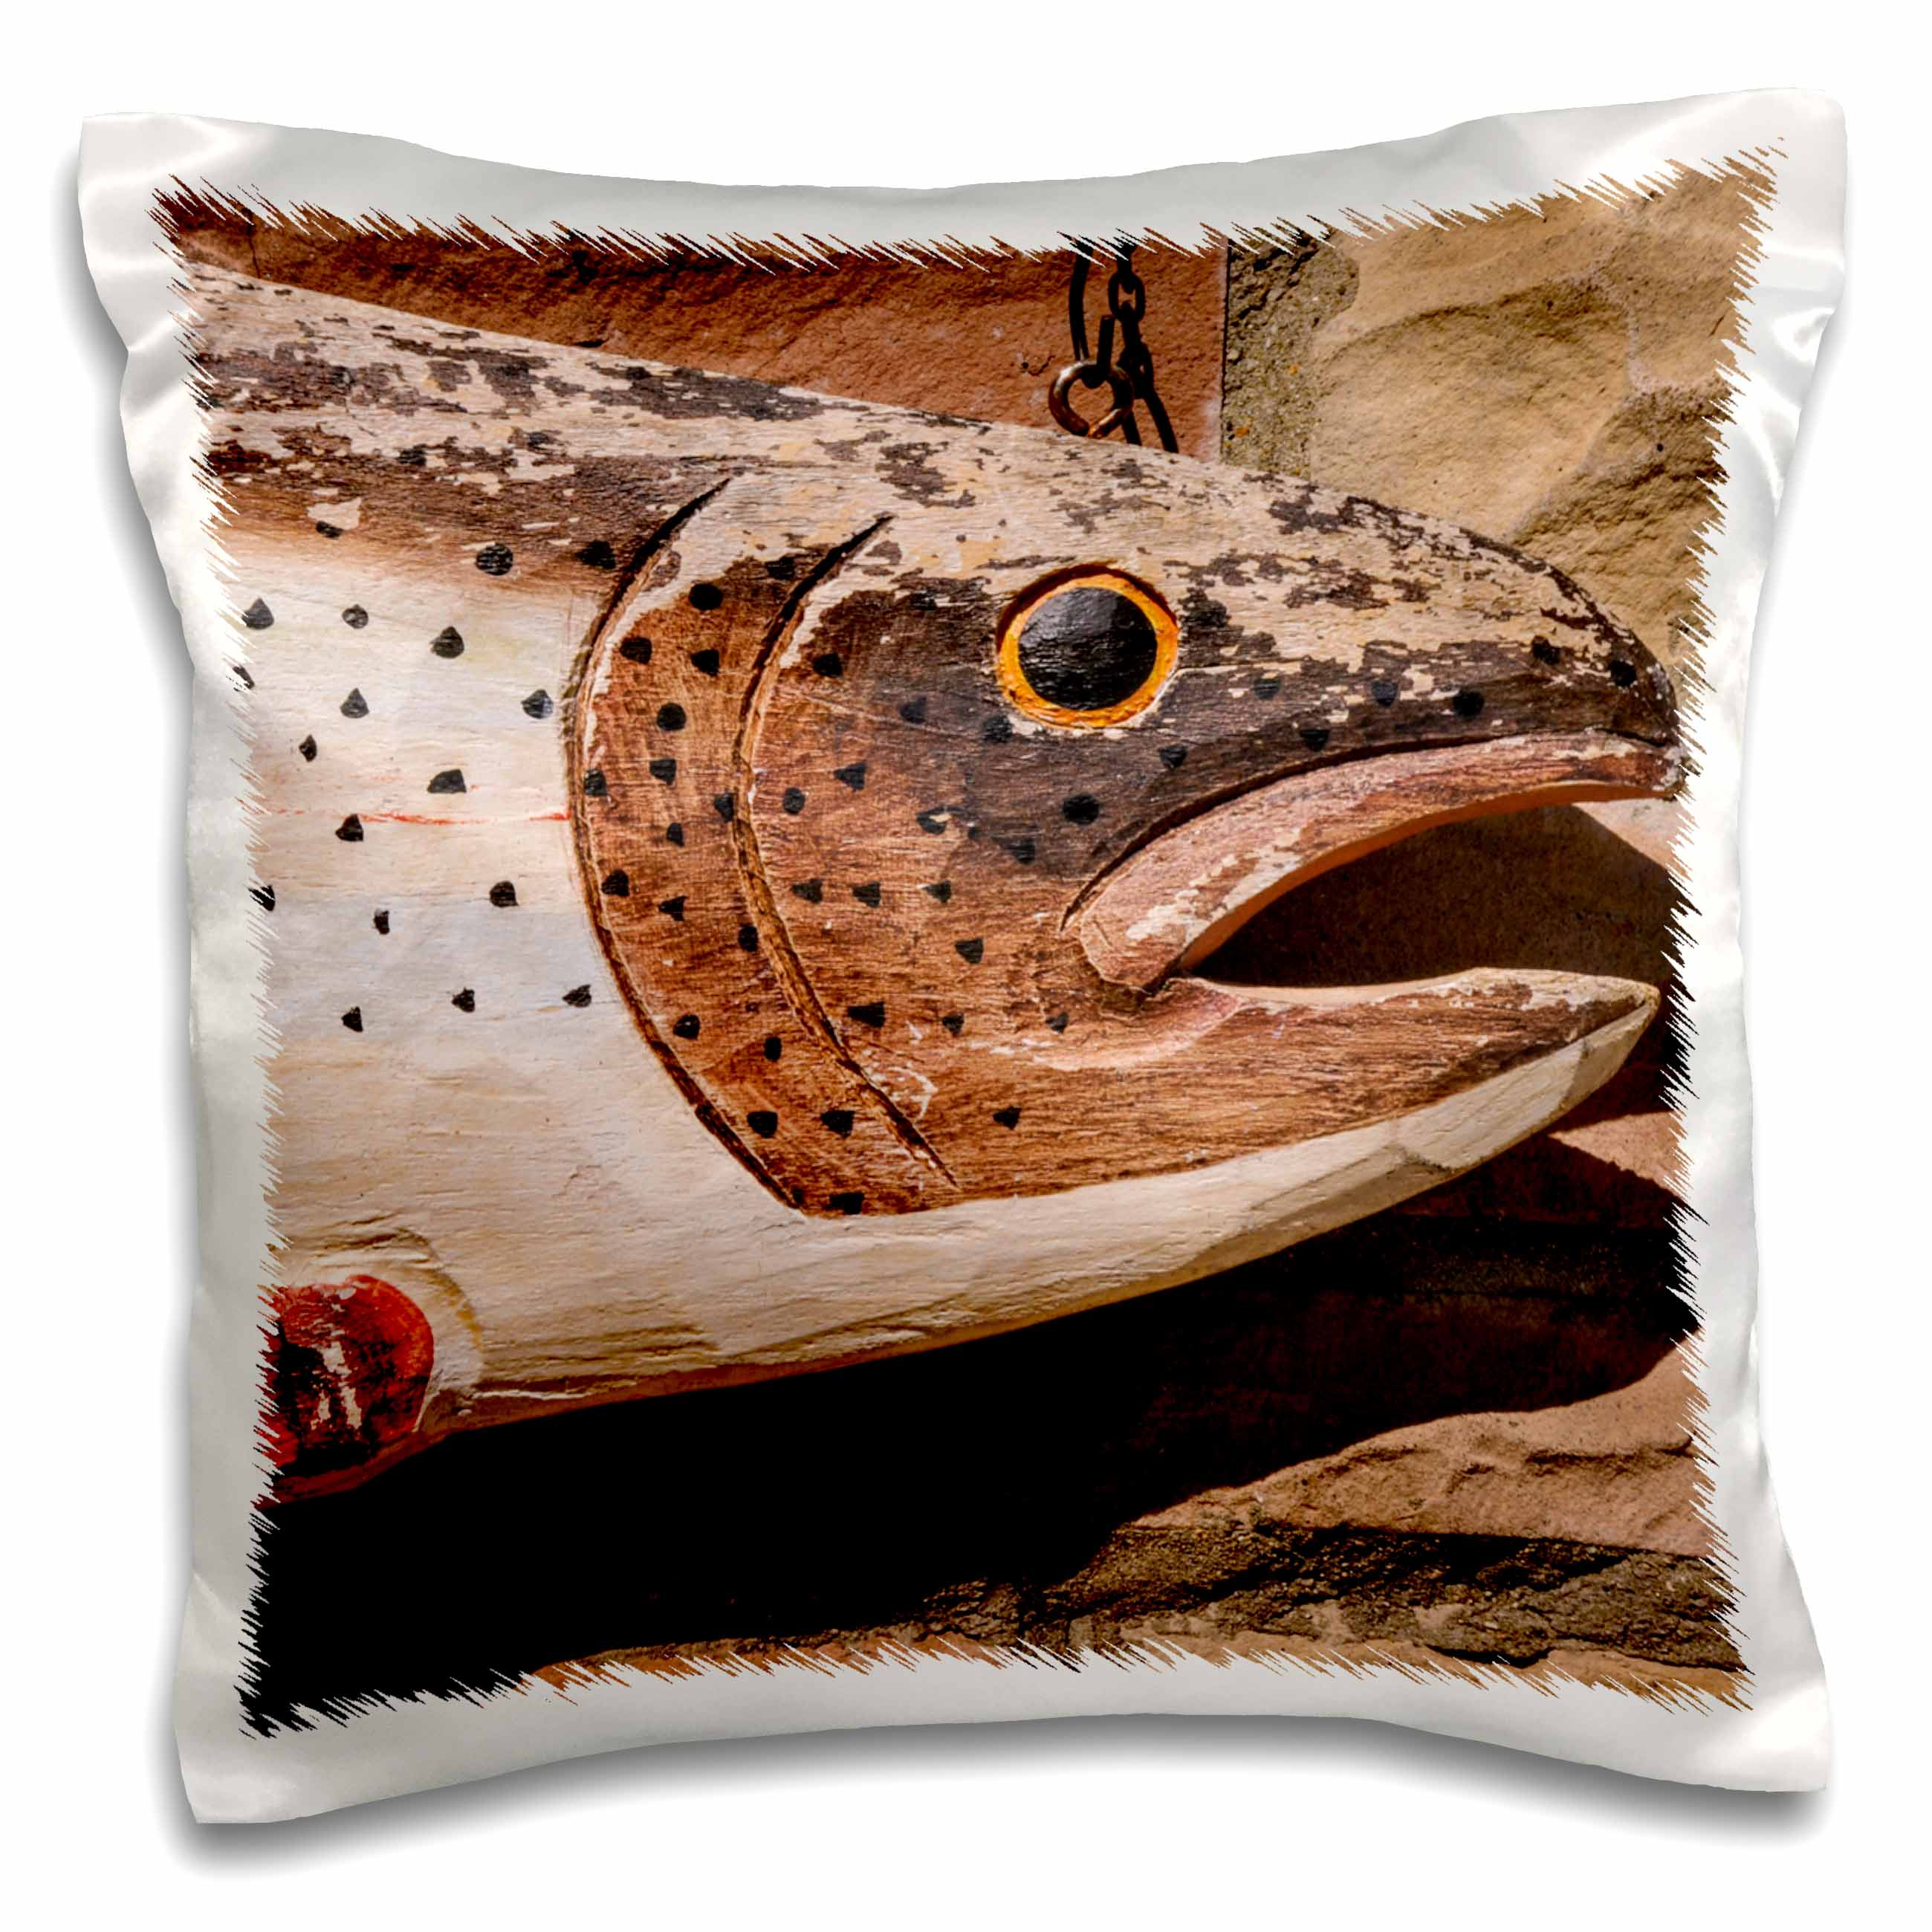 3dRose USA, New Jersey, Califon, Shannons Fly and Tackle Shop, painted trout. - Pillow Case, 16 by 16-inch